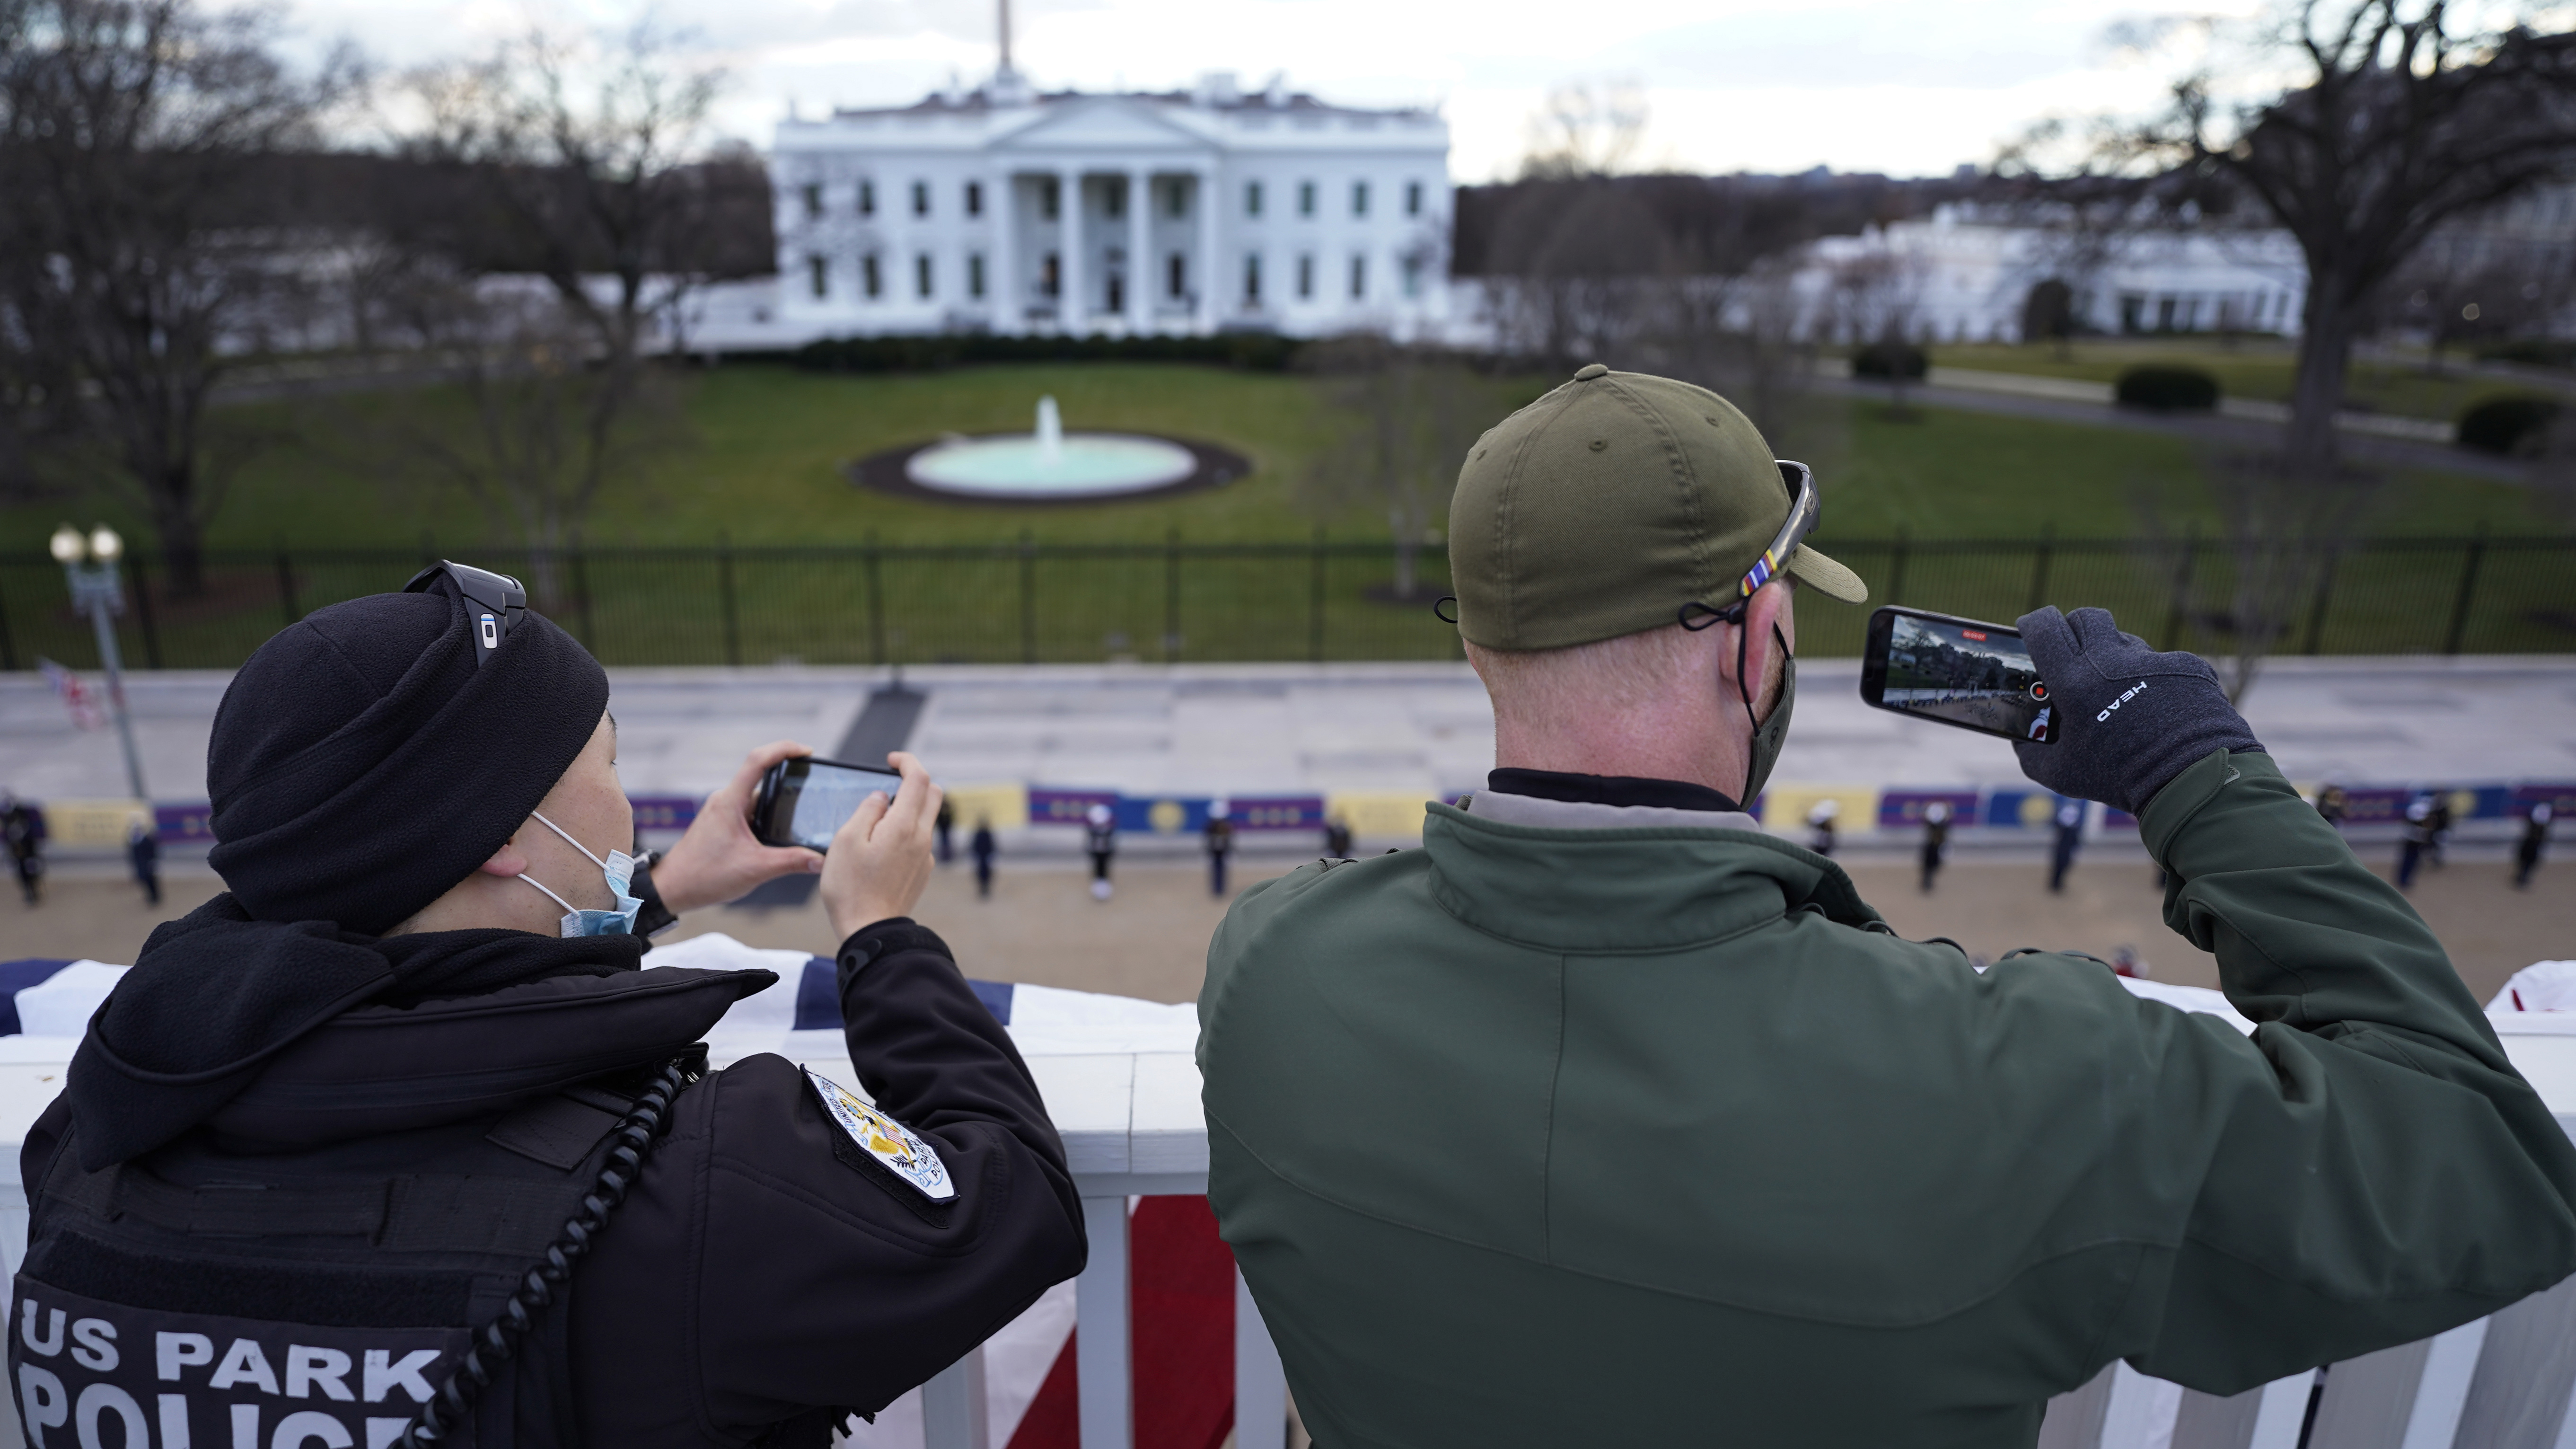 Police take photos as a ceremonial guard marches past the White House during a rehearsal for the President-elect Joe Biden's inauguration ceremony.